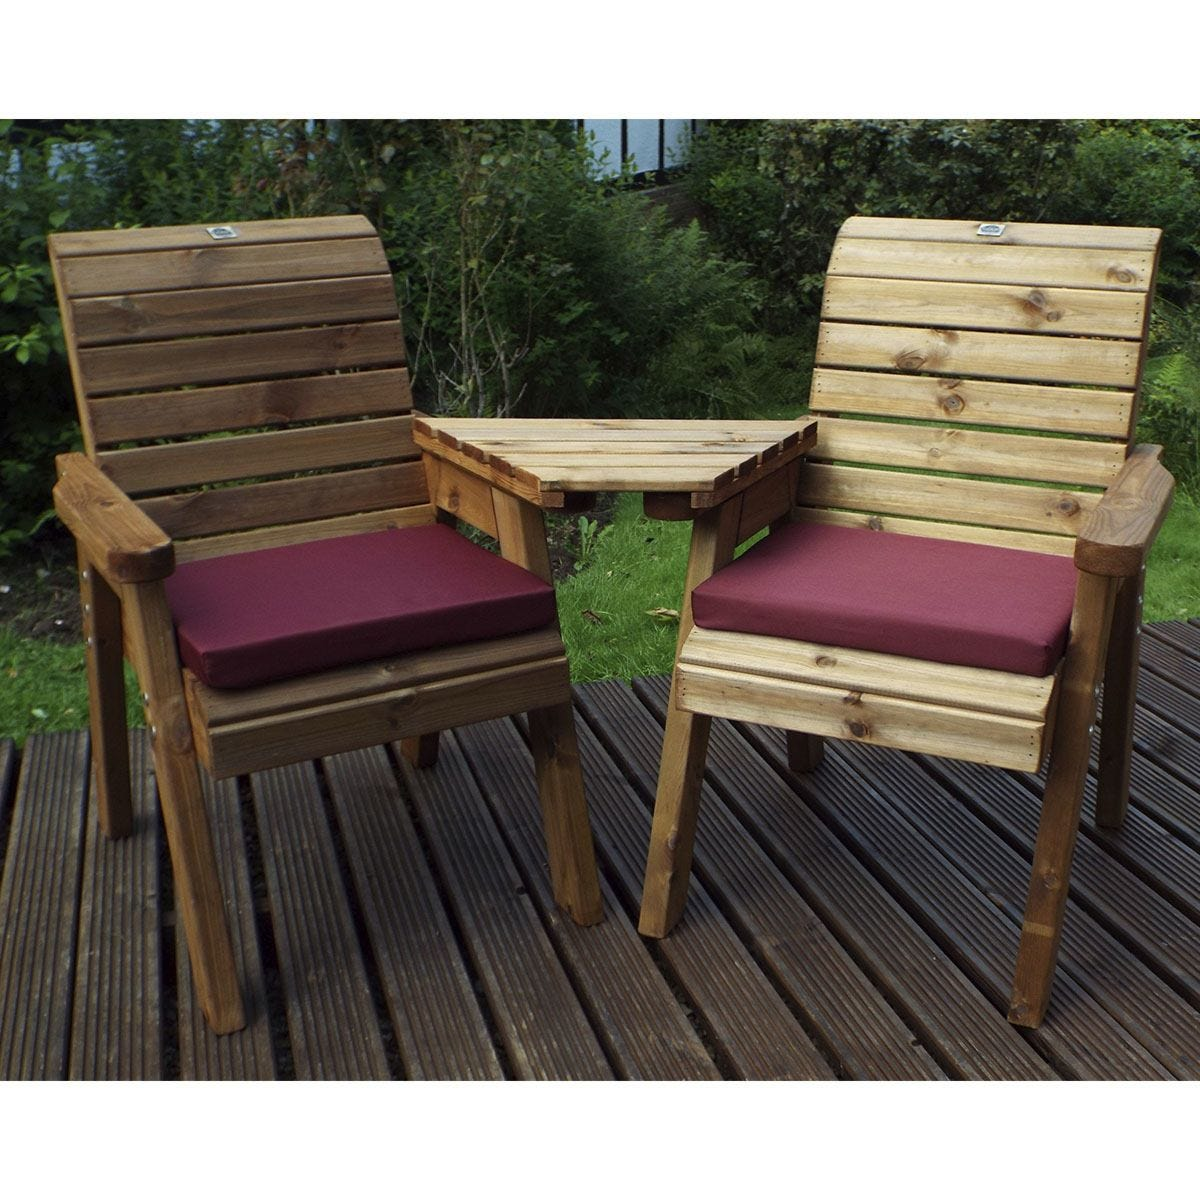 Charles Taylor Twin Companion Set Angled with Burgundy Cushions and Fitted Cover